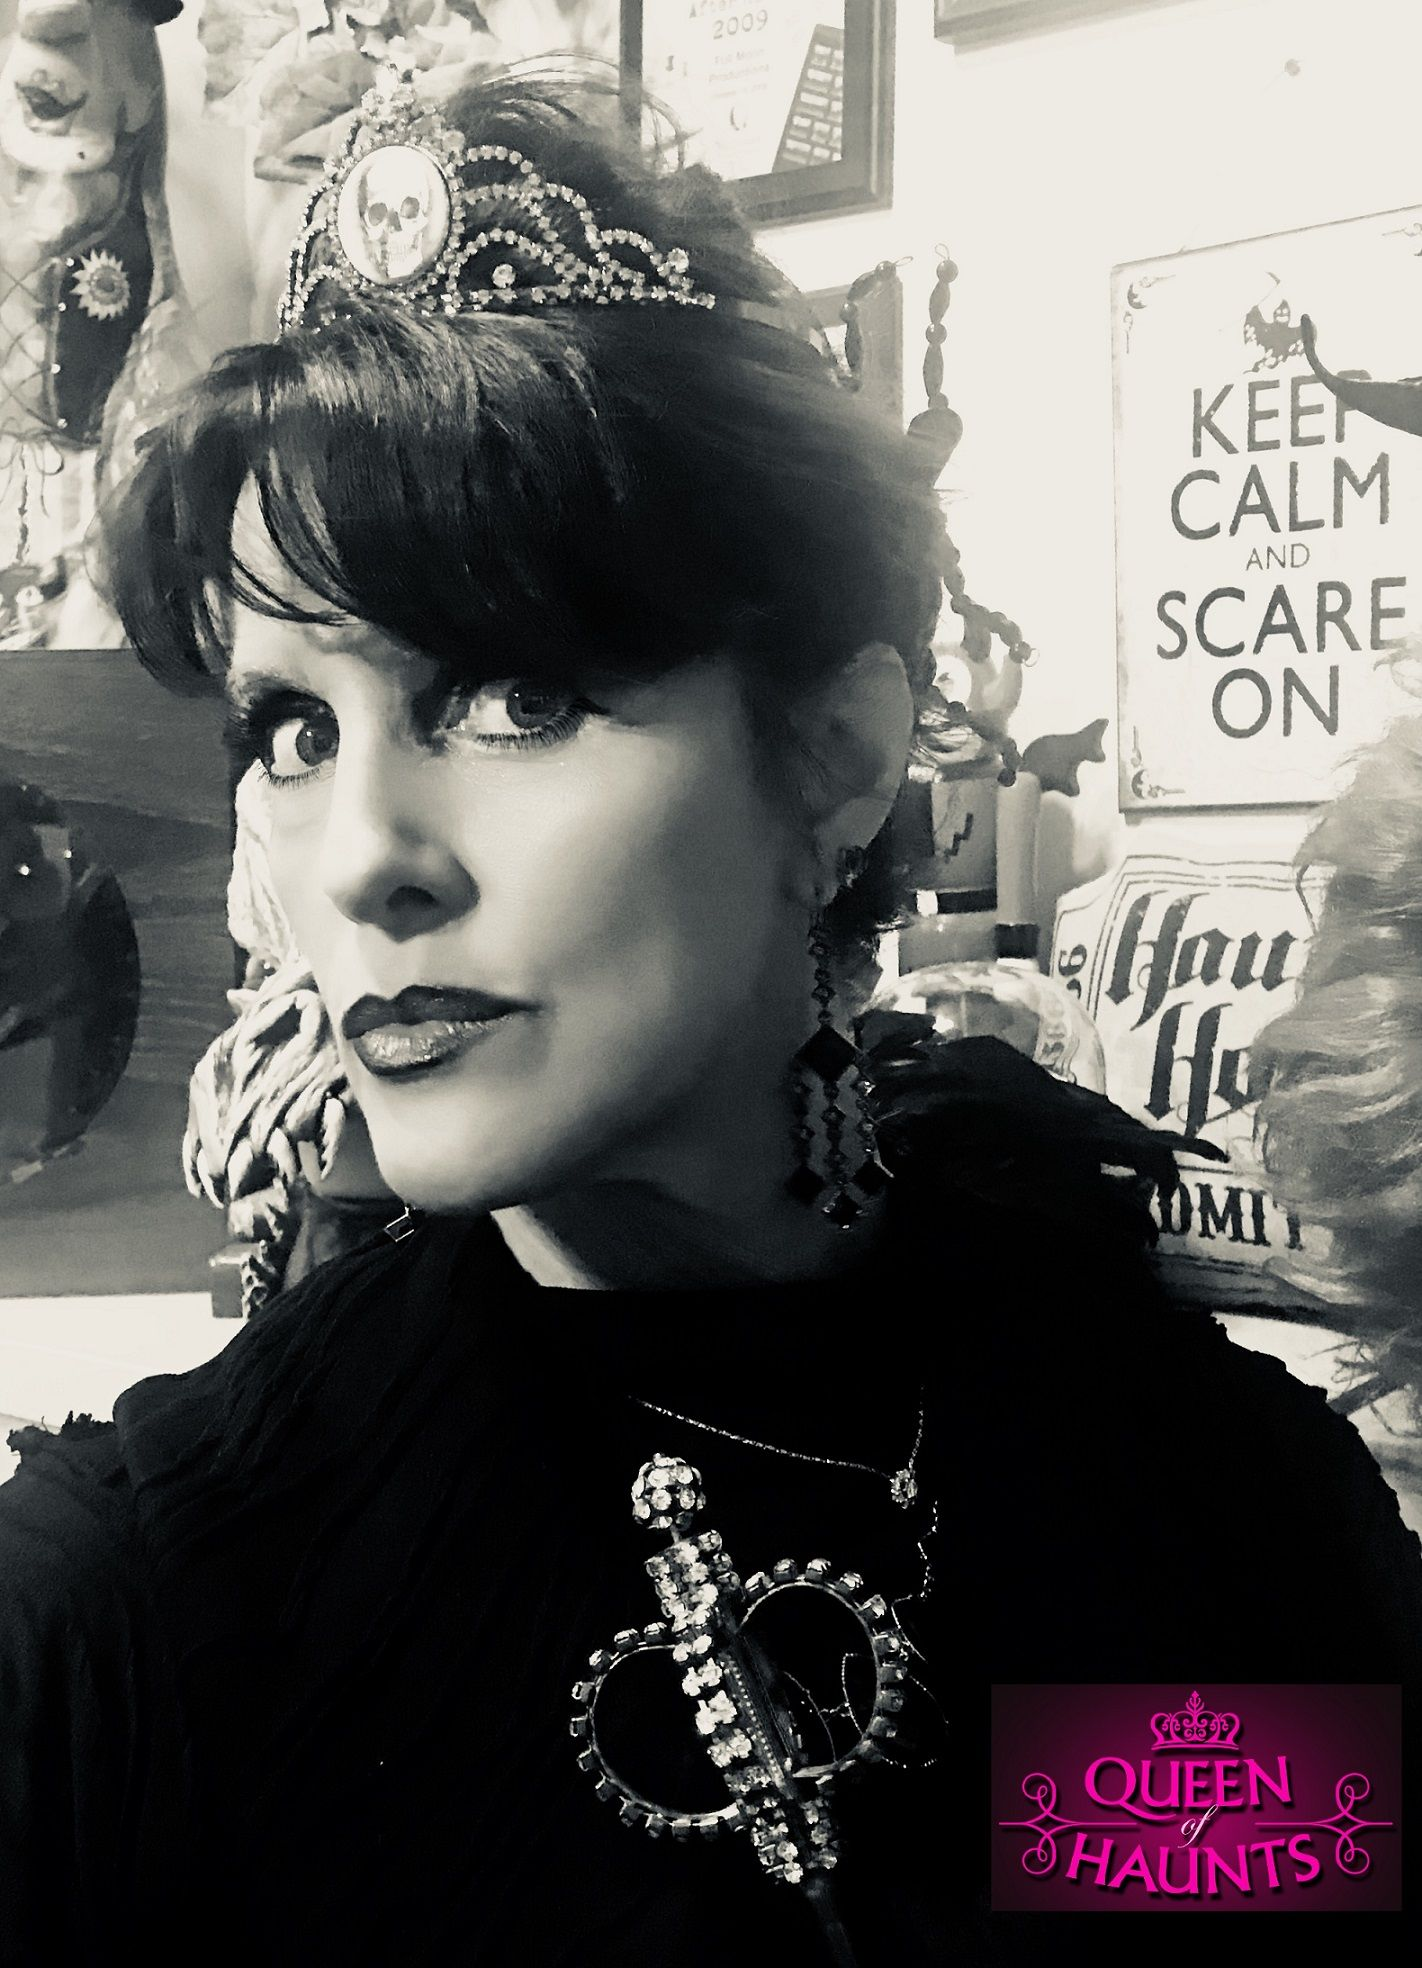 Queen of Haunts - Keep Calm and Scare On!